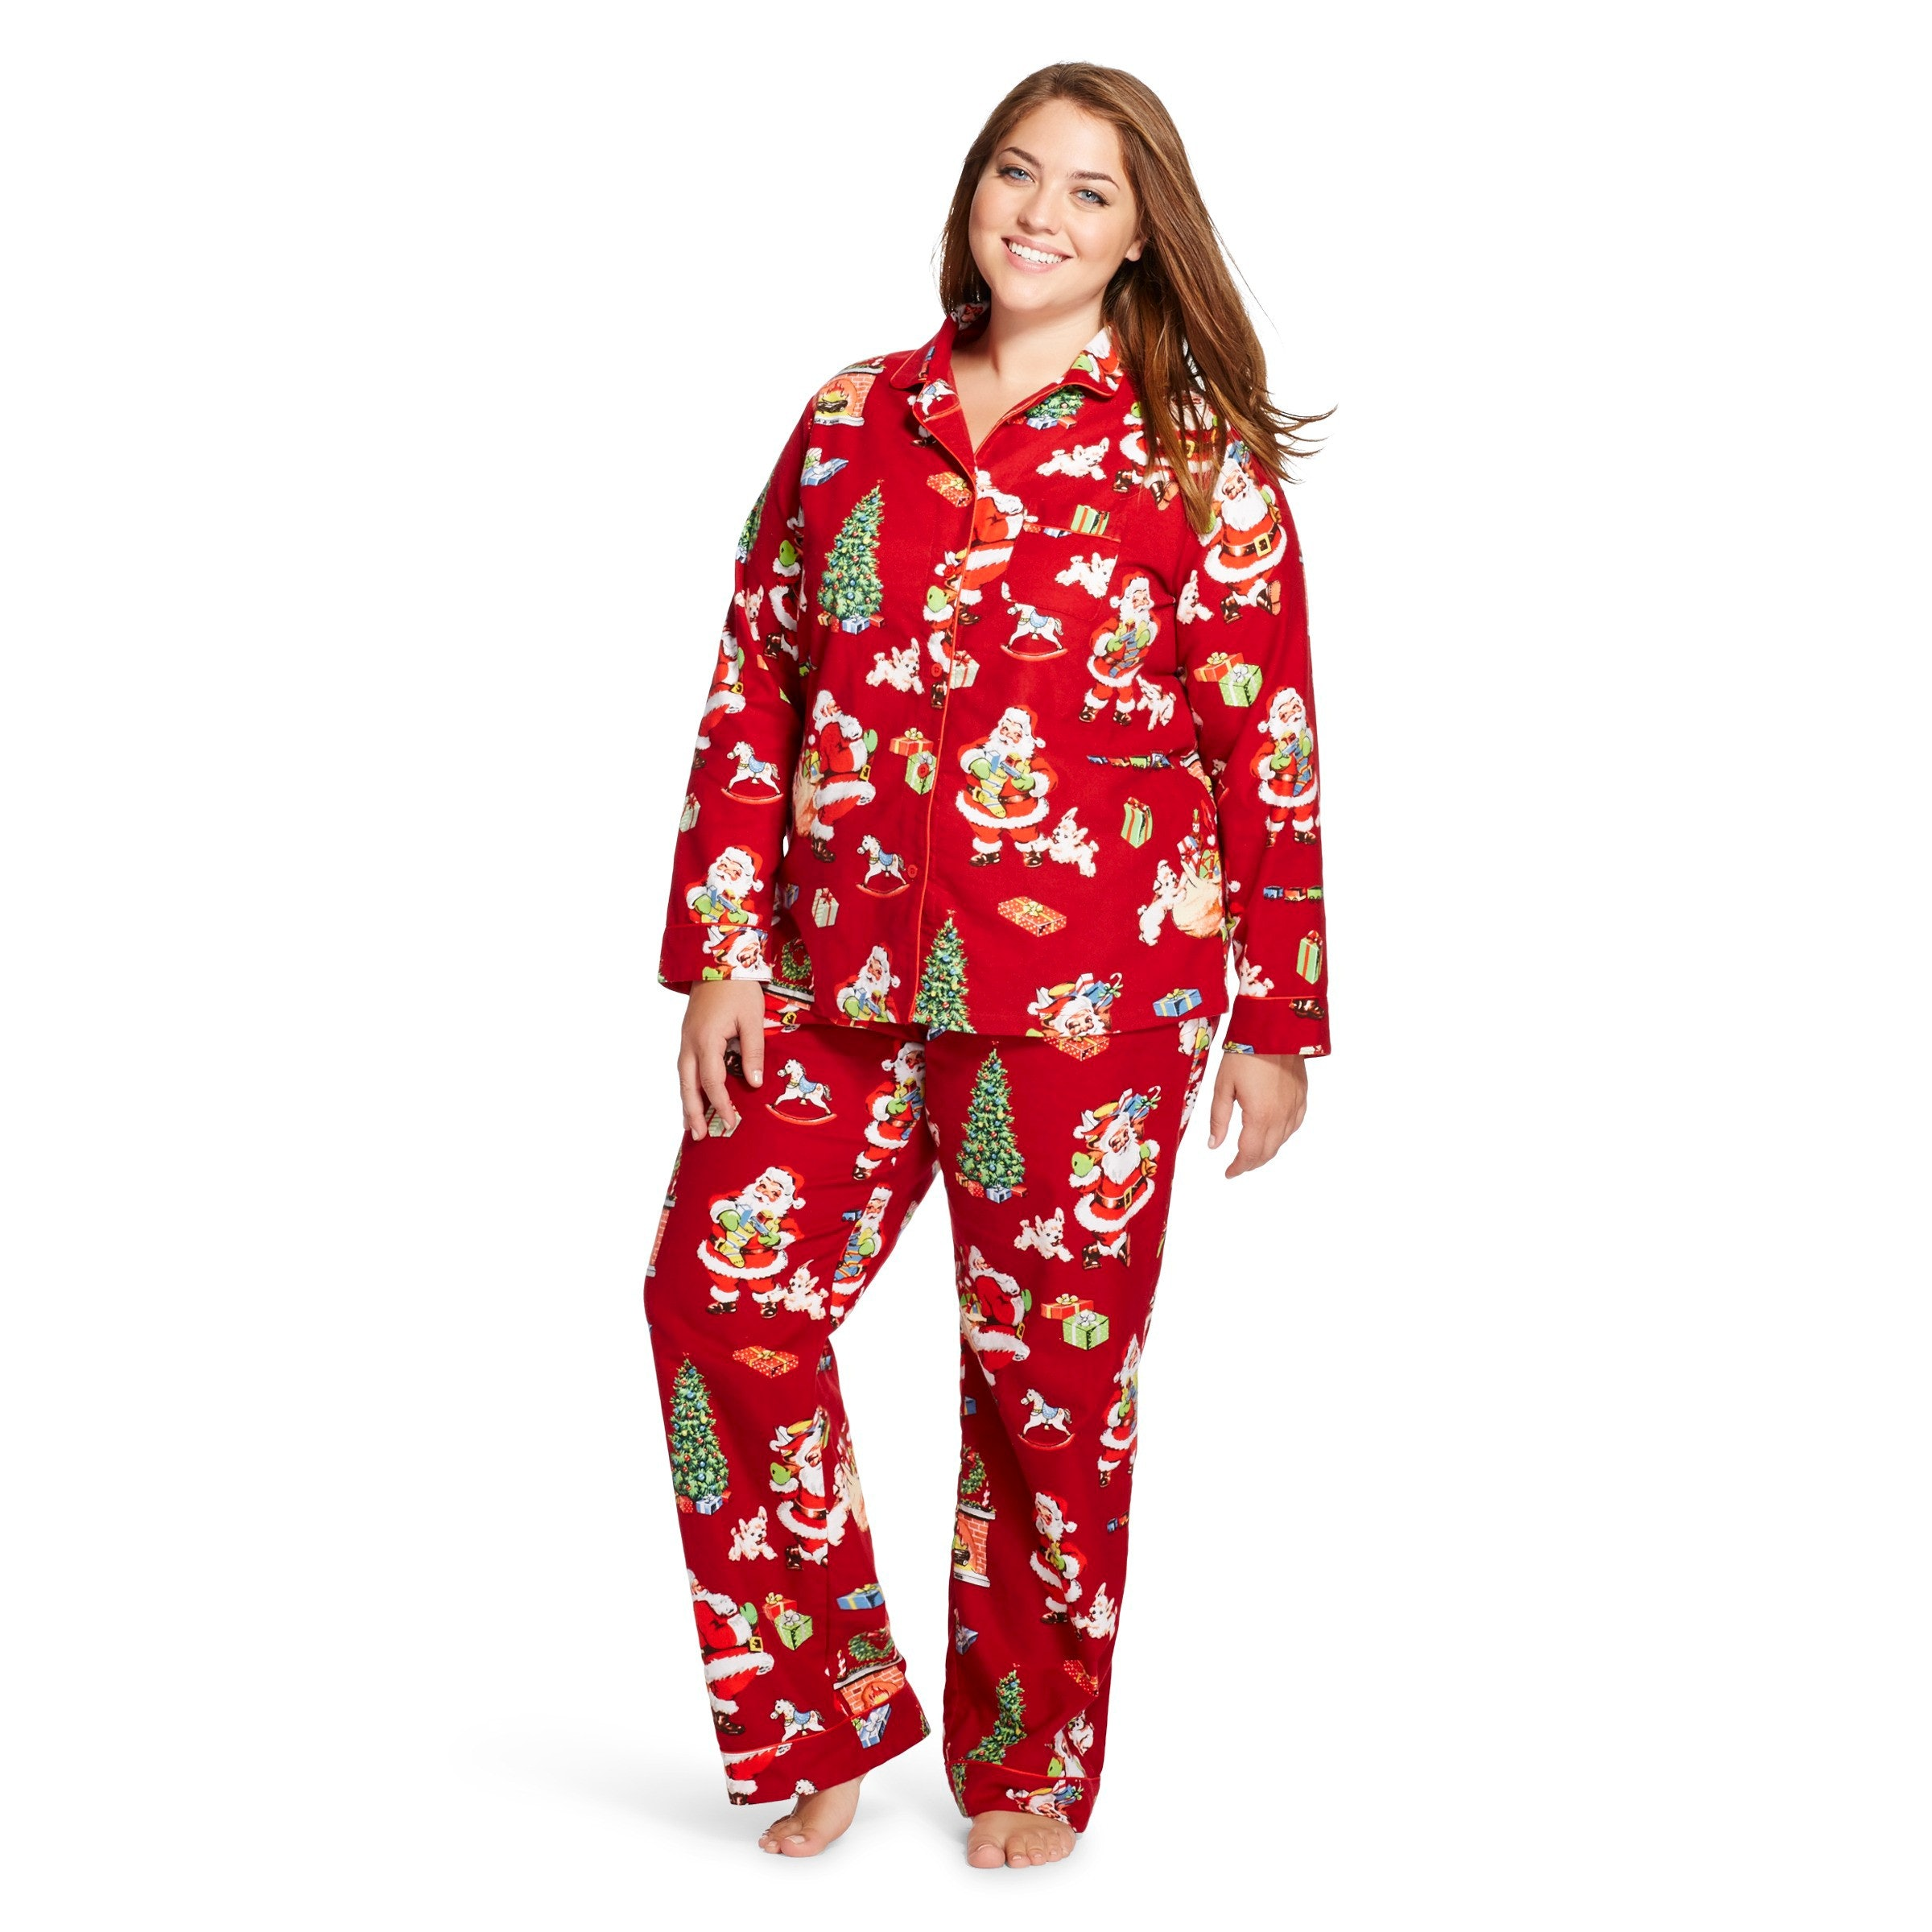 9 cozy holiday pajamas for opening gifts sipping on eggnog photos - Womens Christmas Nightgowns